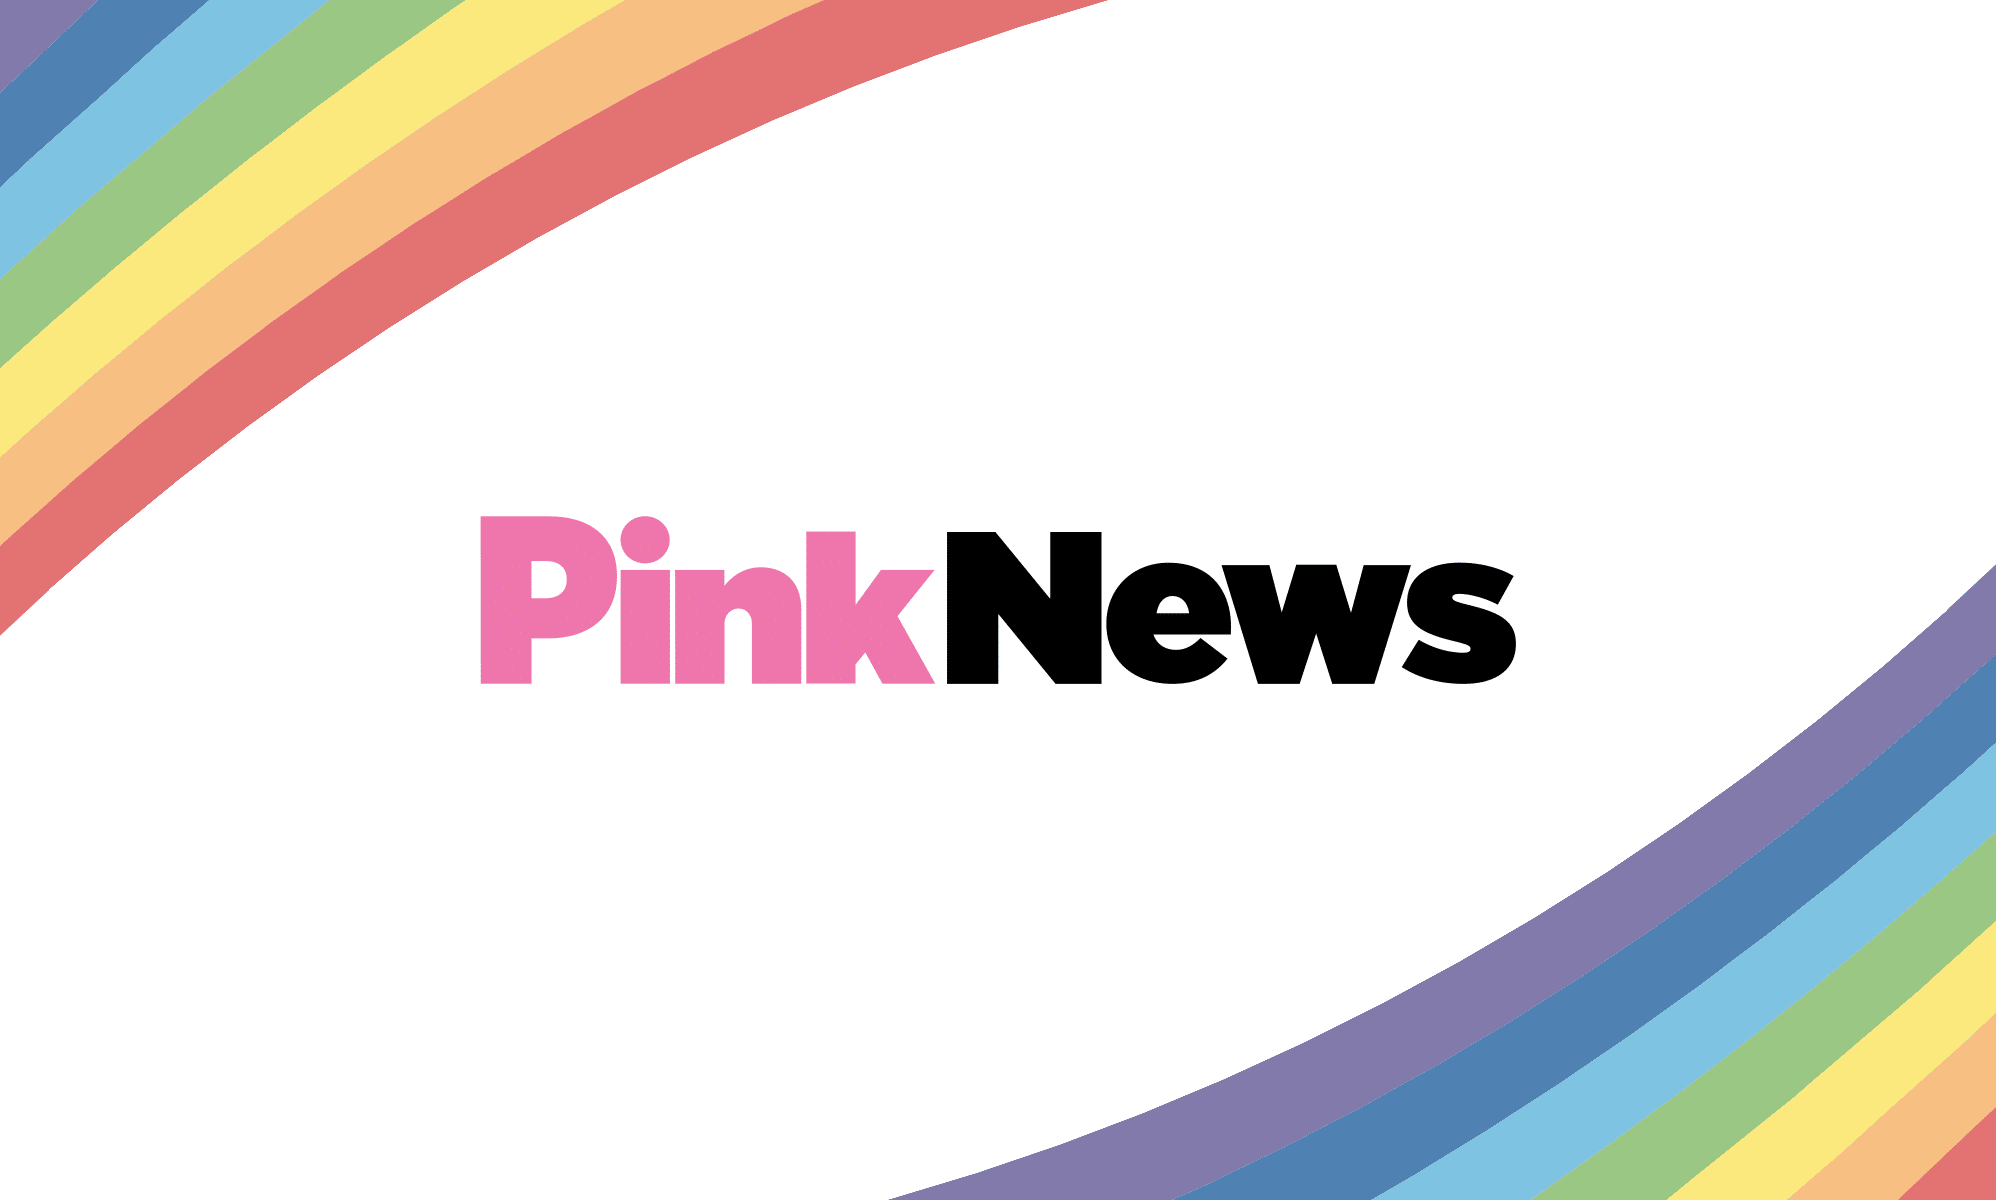 Last chance to nominate for our list of the most influential LGBT Twitter users